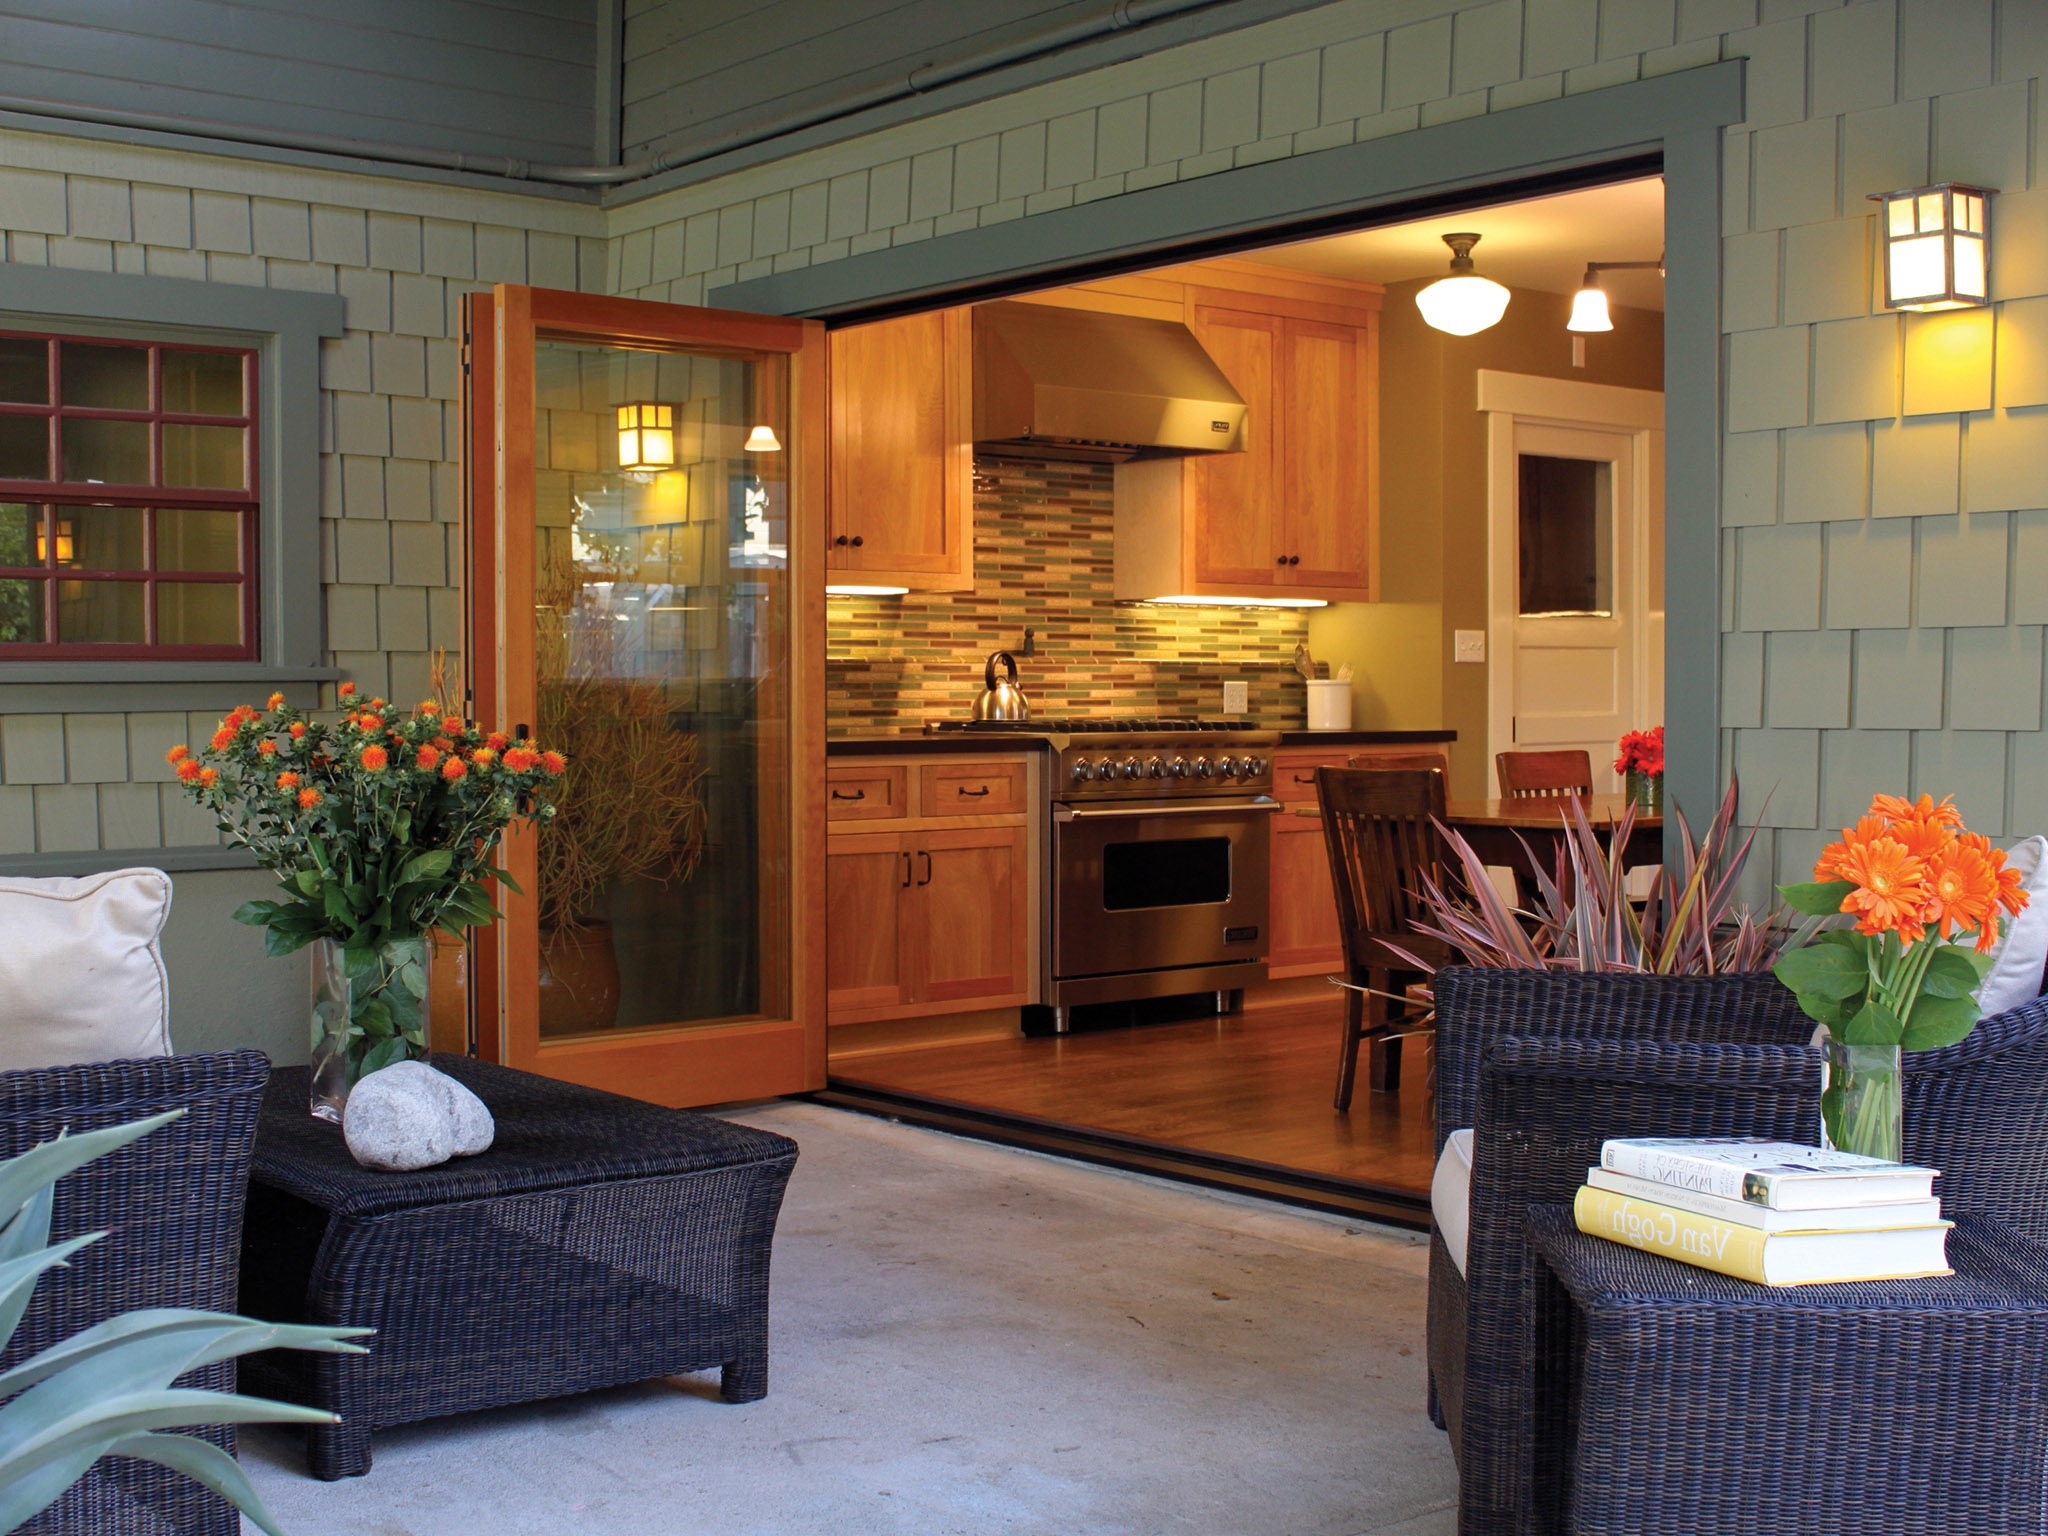 Modern Wooden Frame Bifold Glass Doors For Kitchen And Patio (Image 19 of 24)